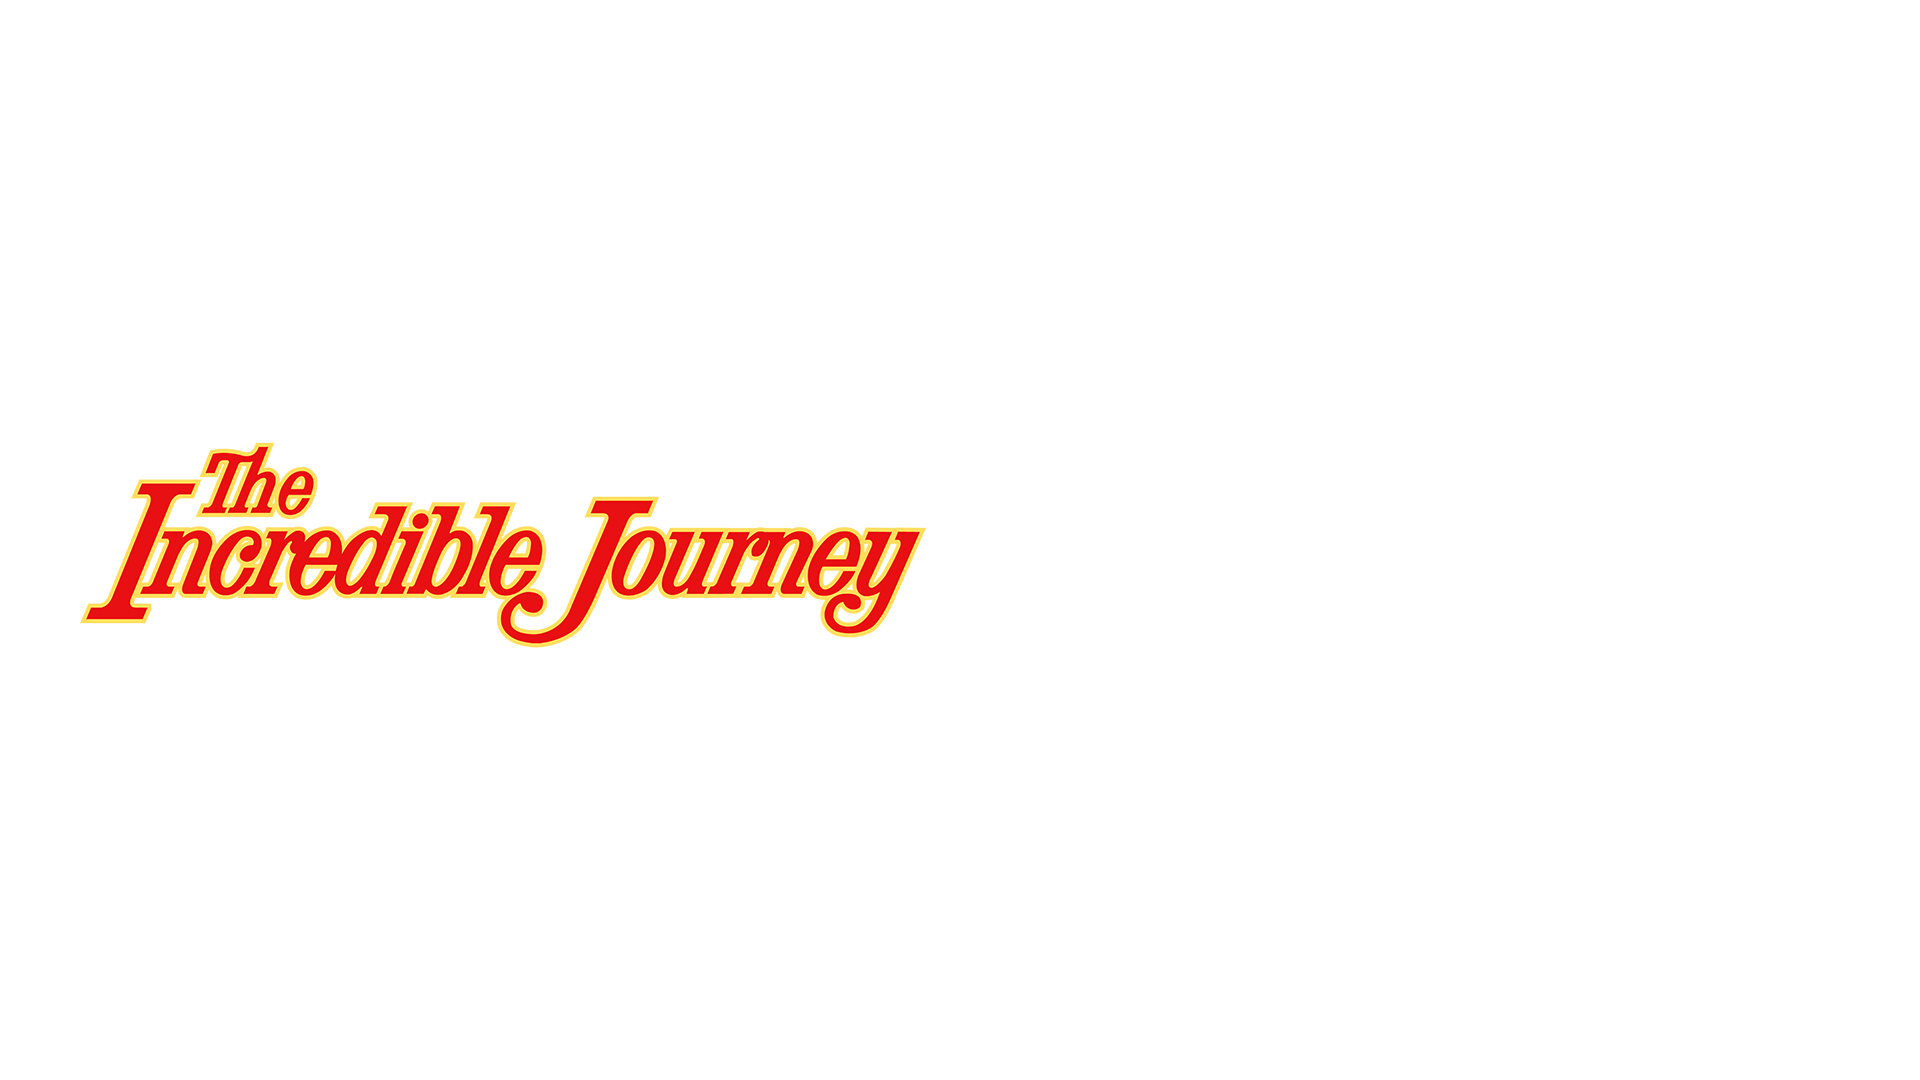 Watch The Incredible Journey Full Movie Disney